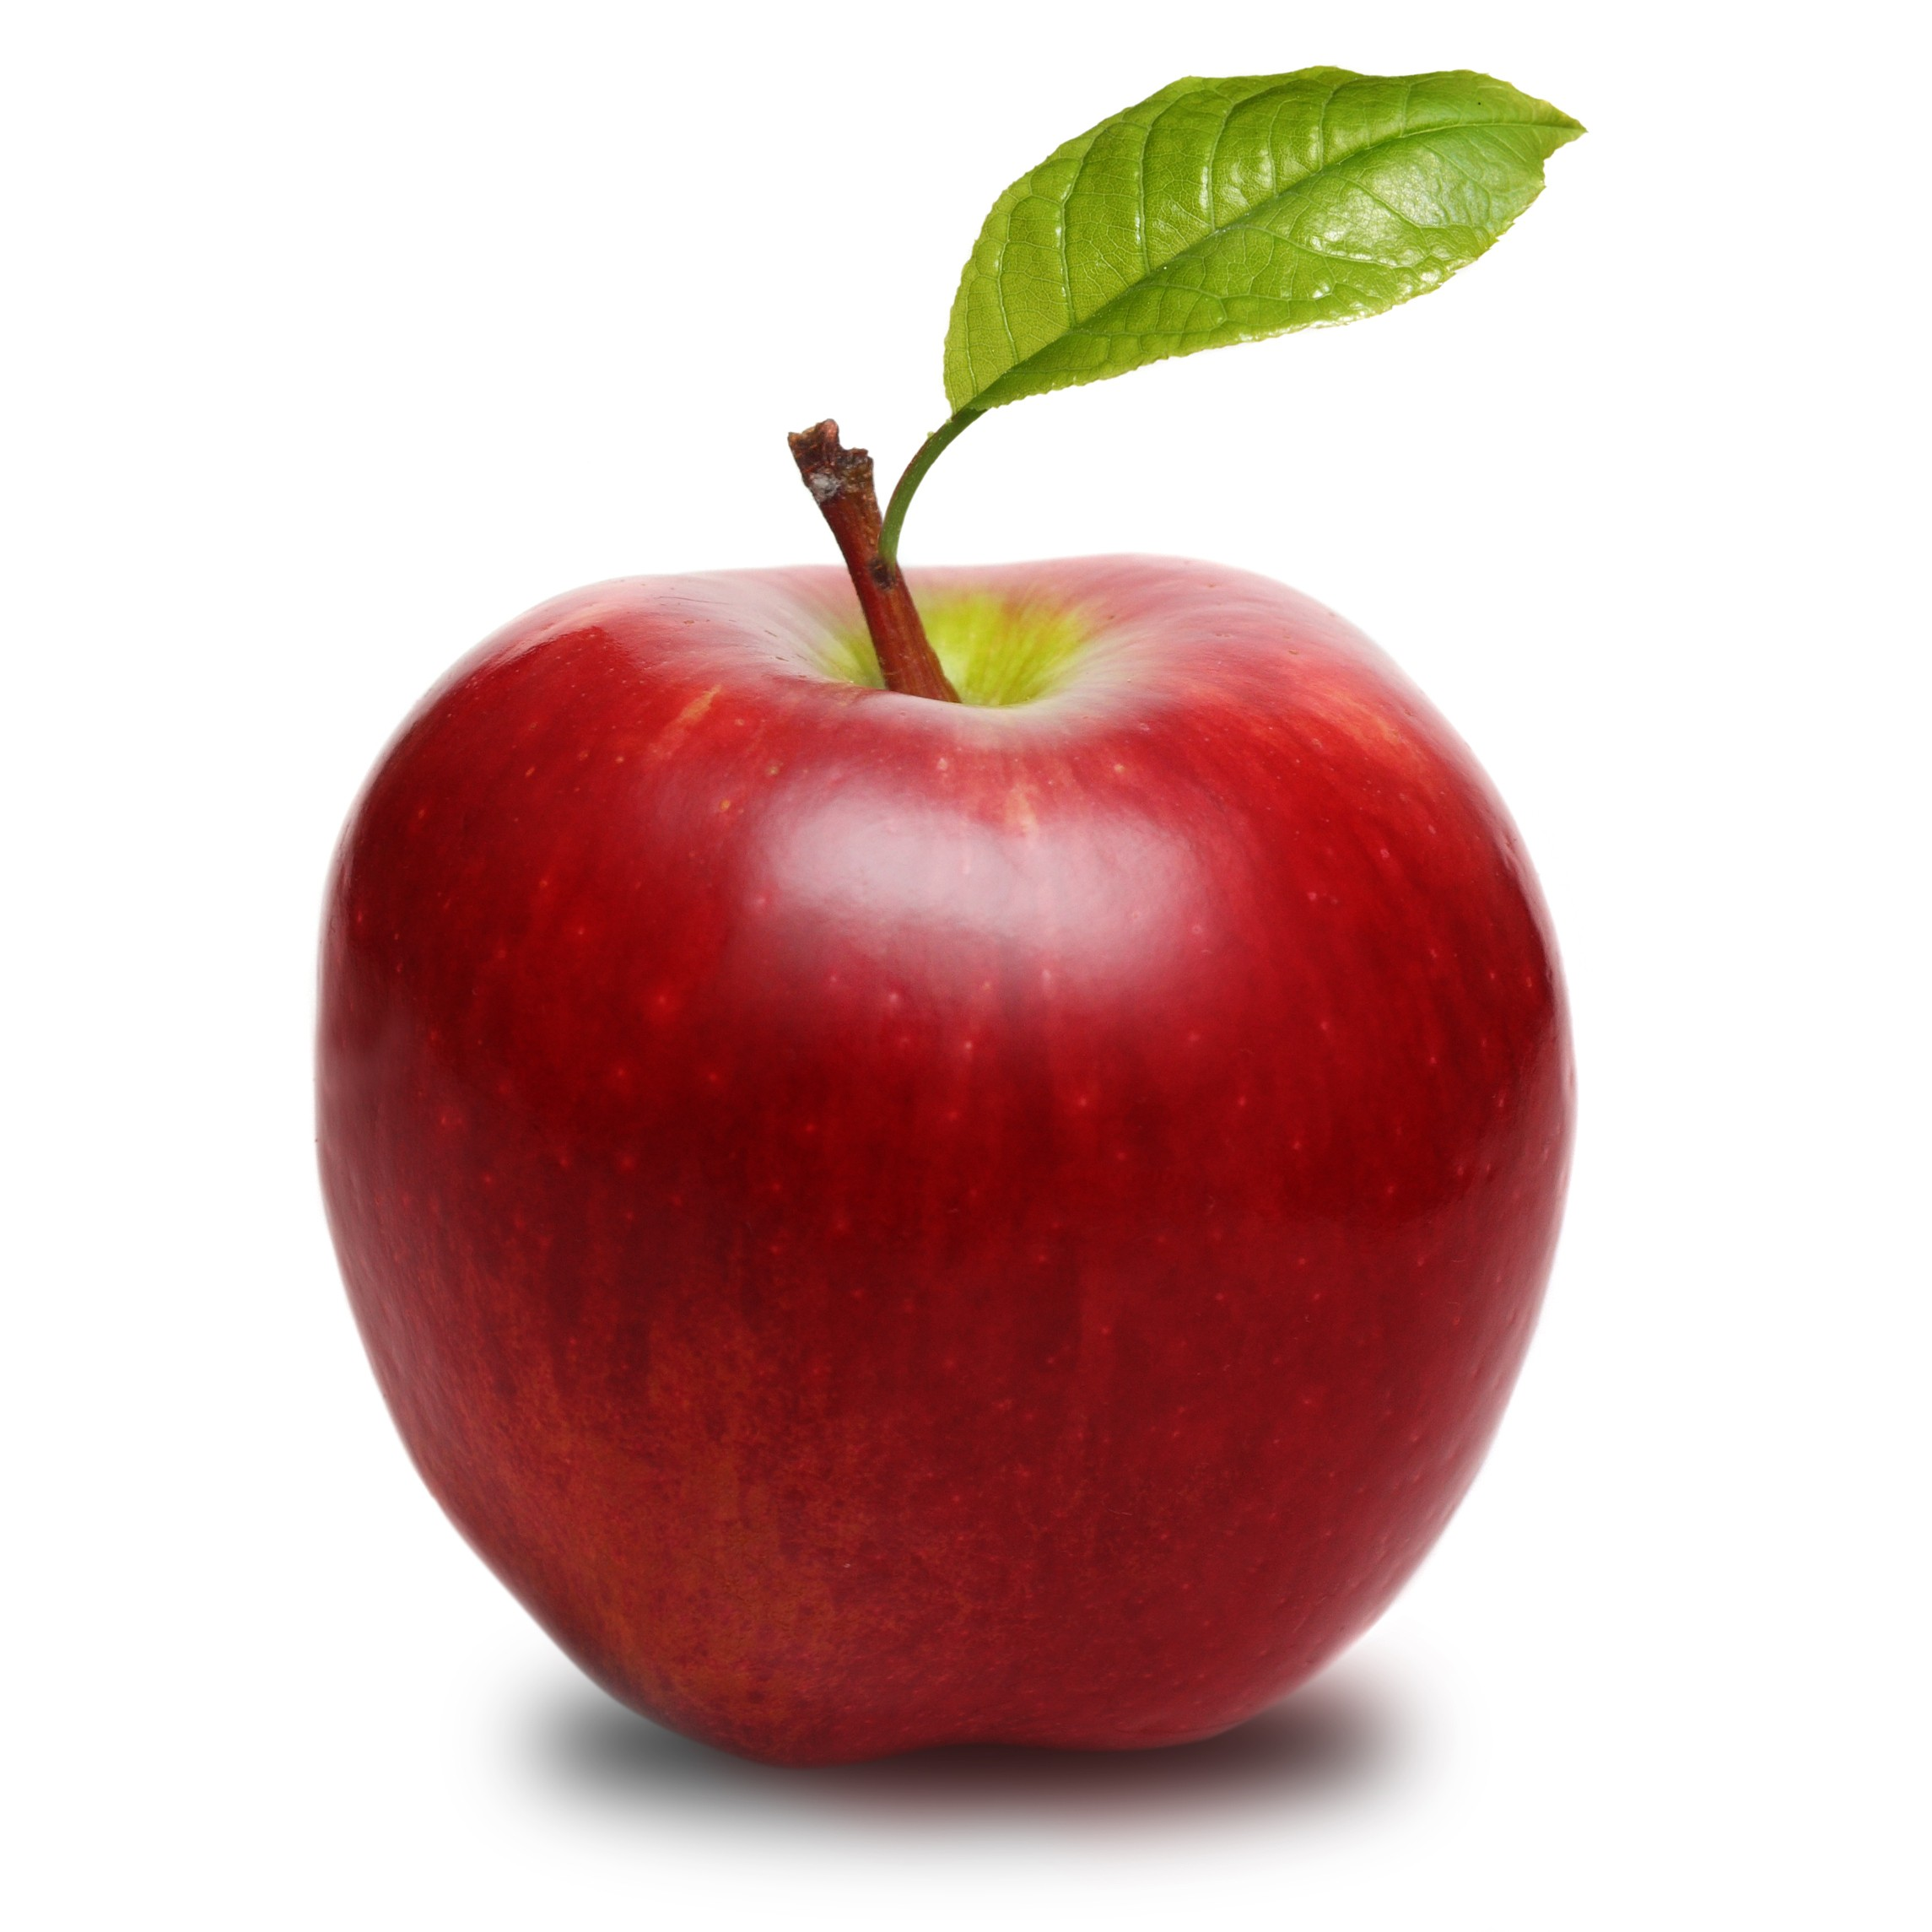 Apples are extremely rich in important antioxidants, flavanoids, and dietary fiber.